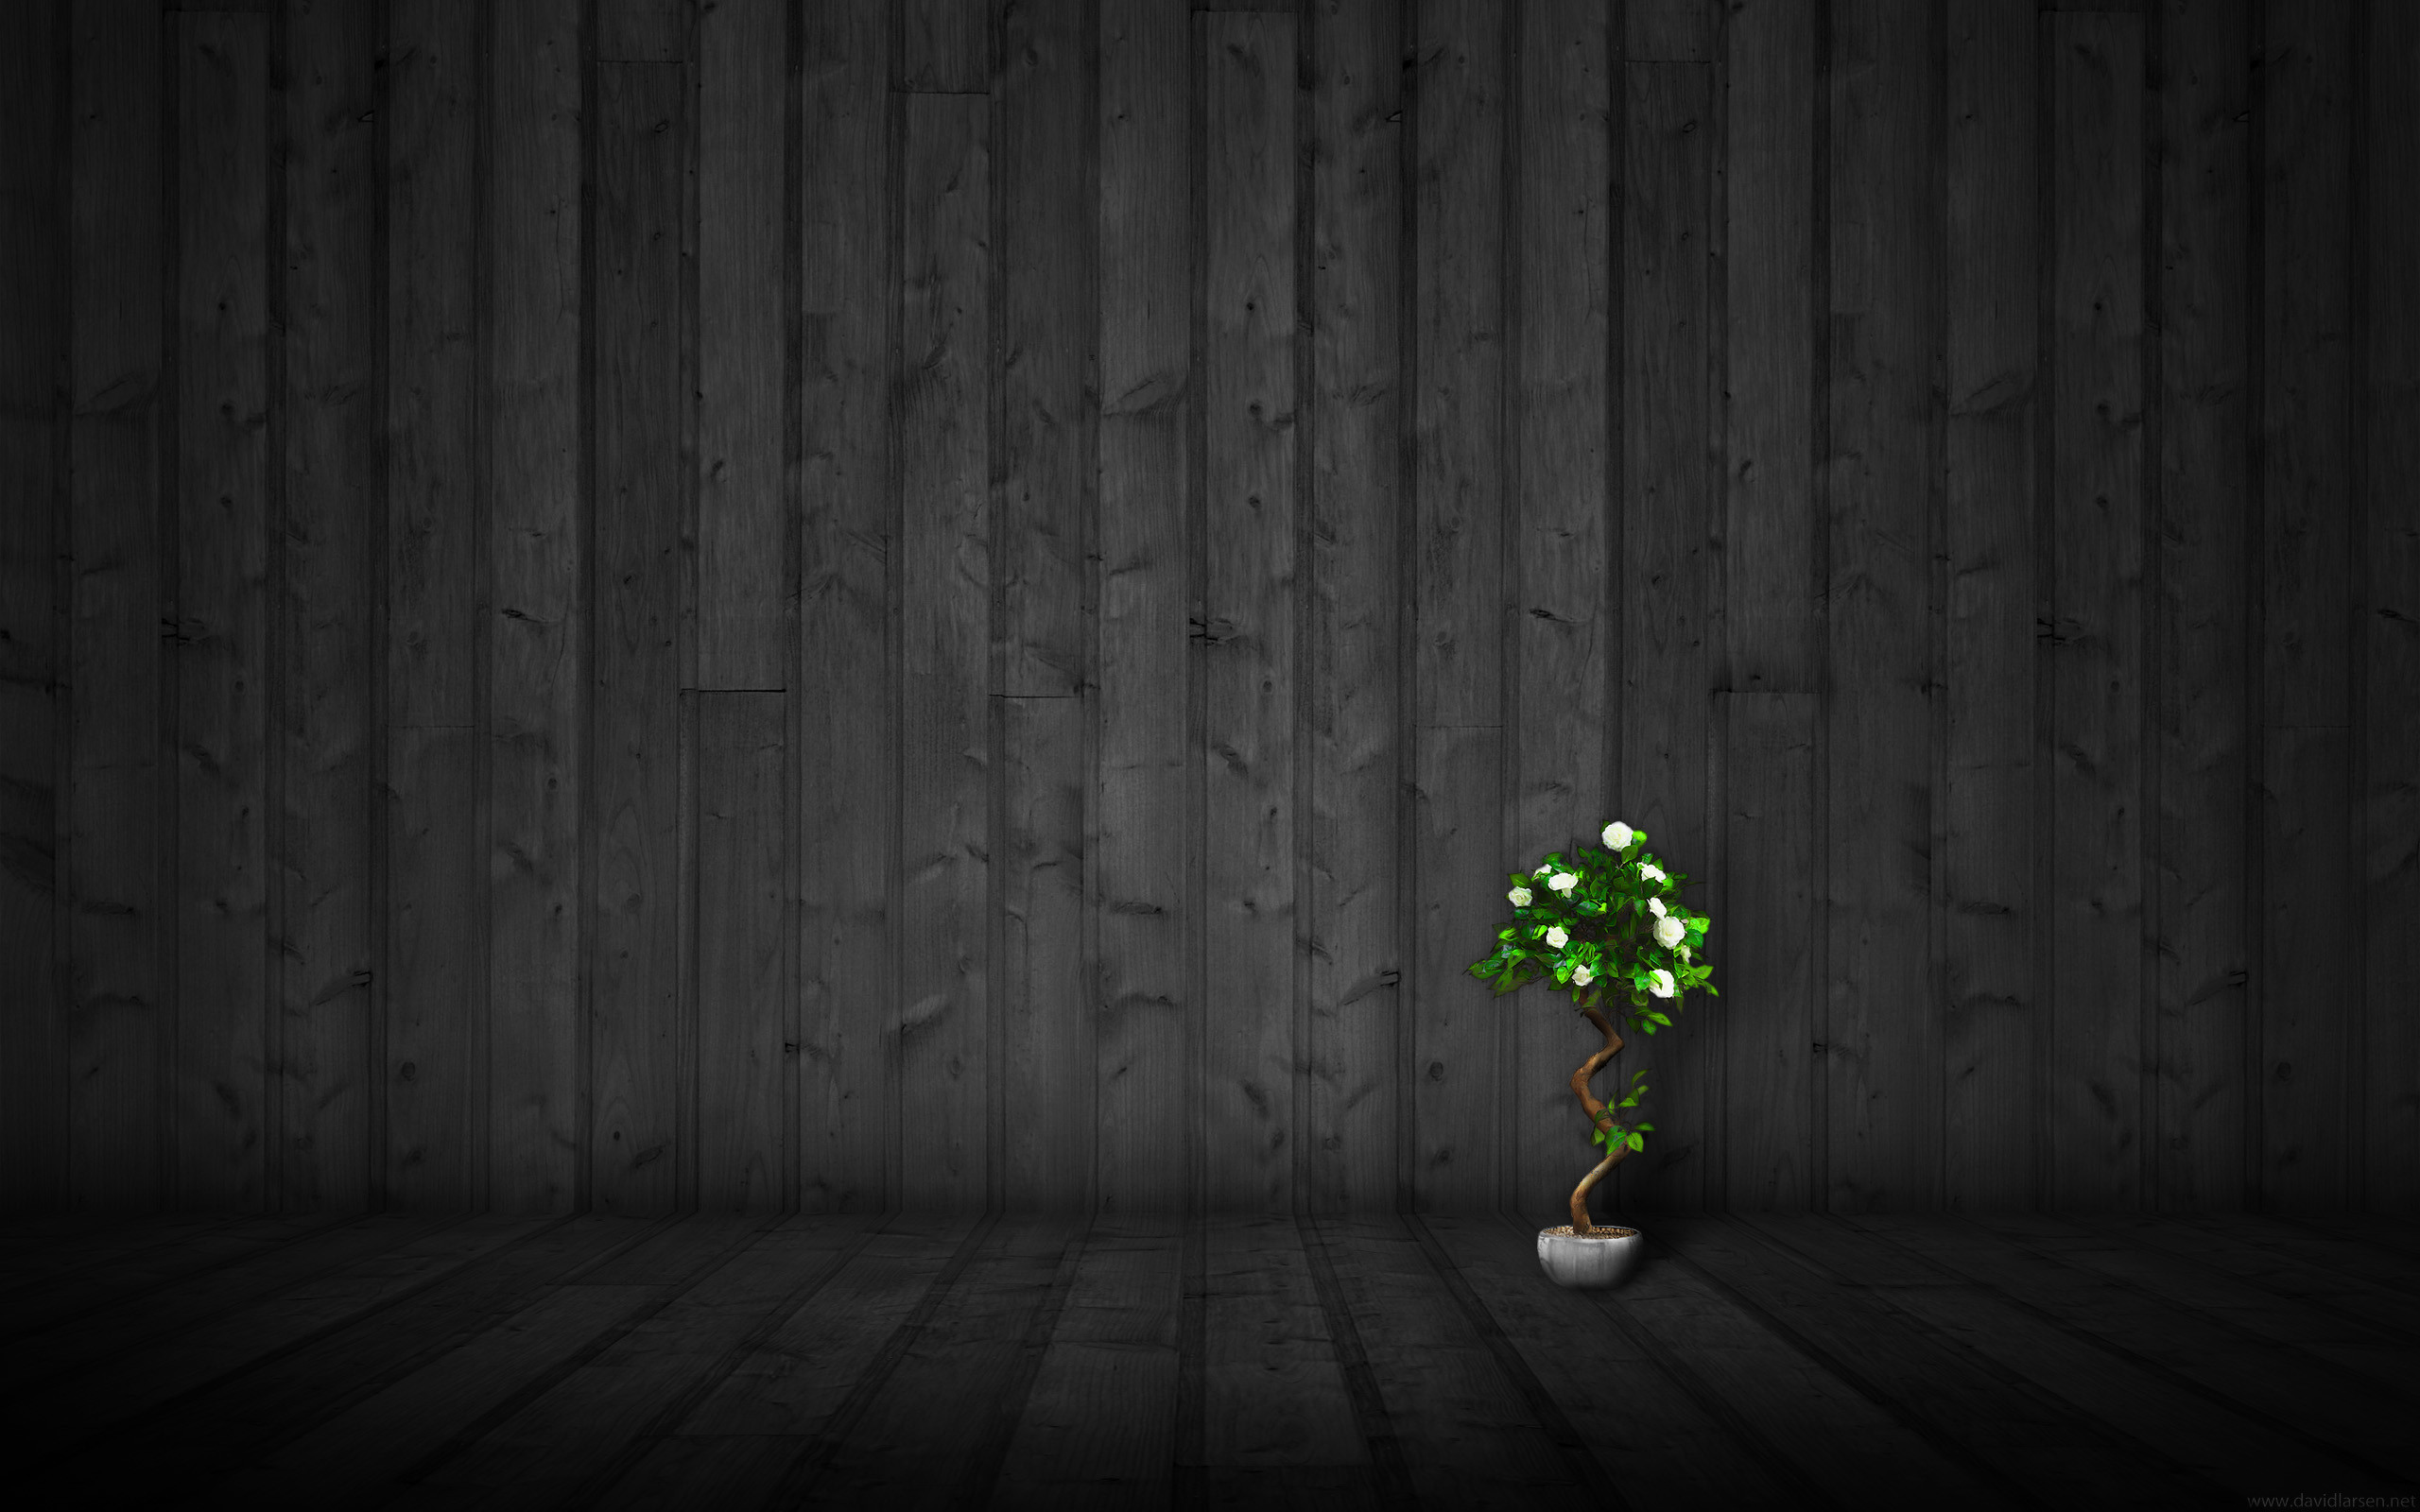 2560x1600 Theme Bin» Blog Archive » Dark Wood 2 HD Wallpaper